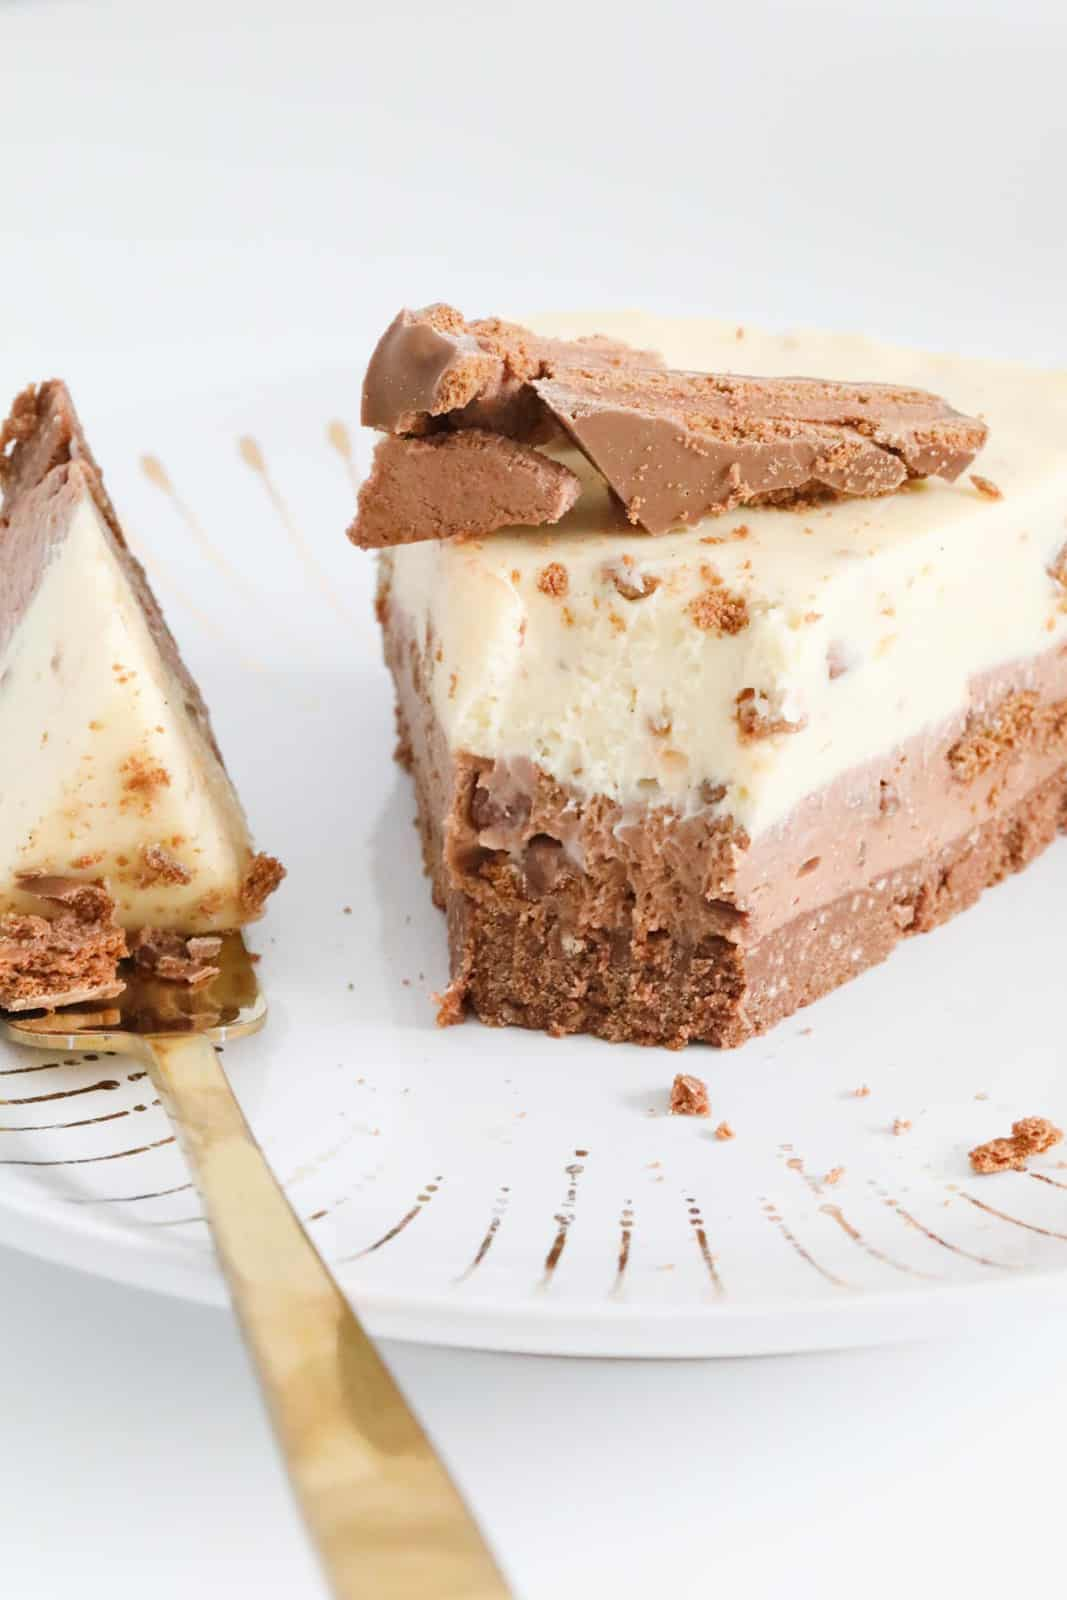 A half eaten piece of white and milk chocolate cheesecake.